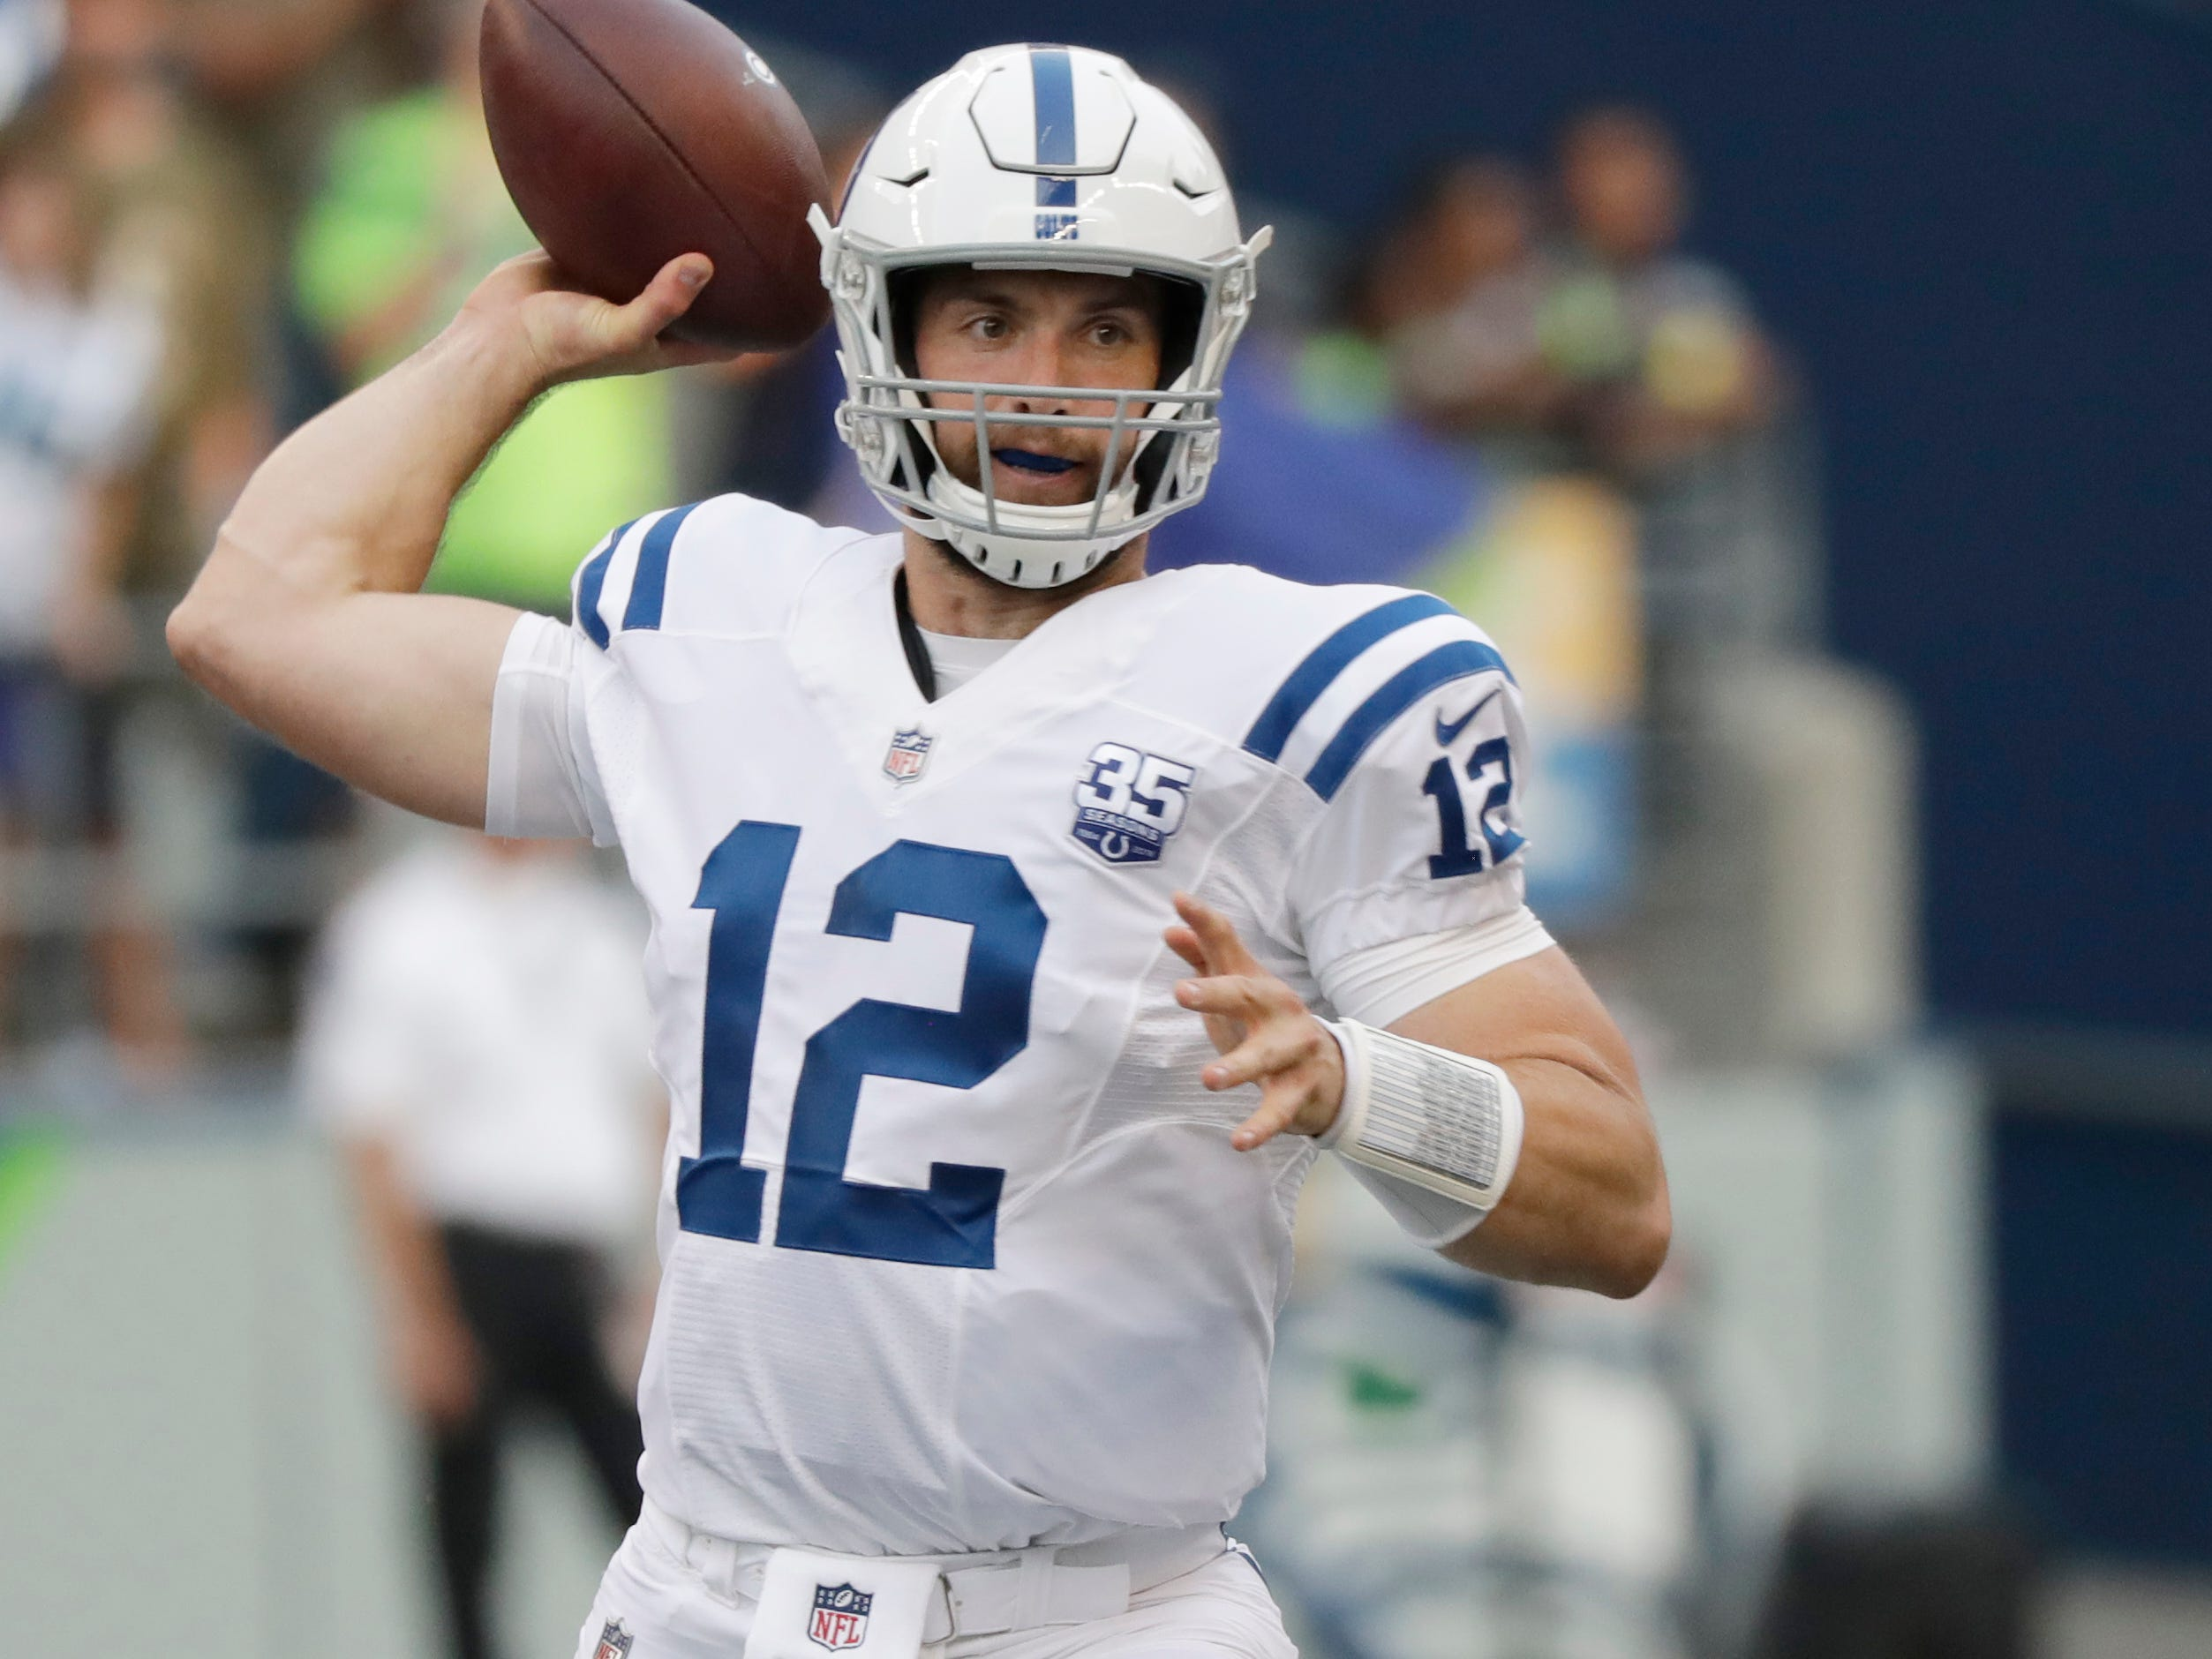 Indianapolis Colts quarterback Andrew Luck passes against the Seattle Seahawks during the first half of an NFL football preseason game, Thursday, Aug. 9, 2018, in Seattle.